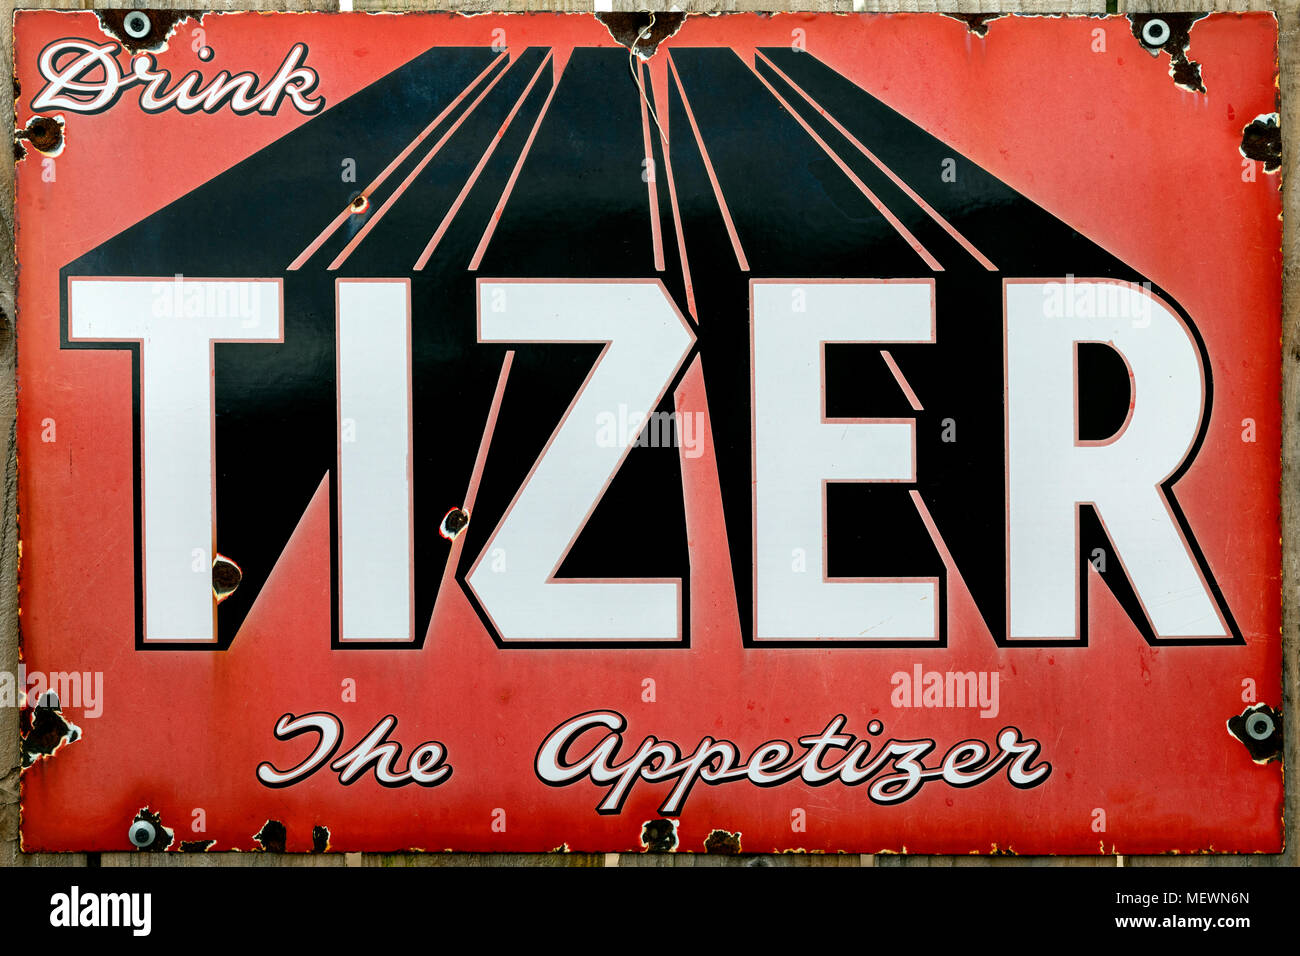 An old metal advertising sign - dates from about 1920. Tizer soft drinks. - Stock Image